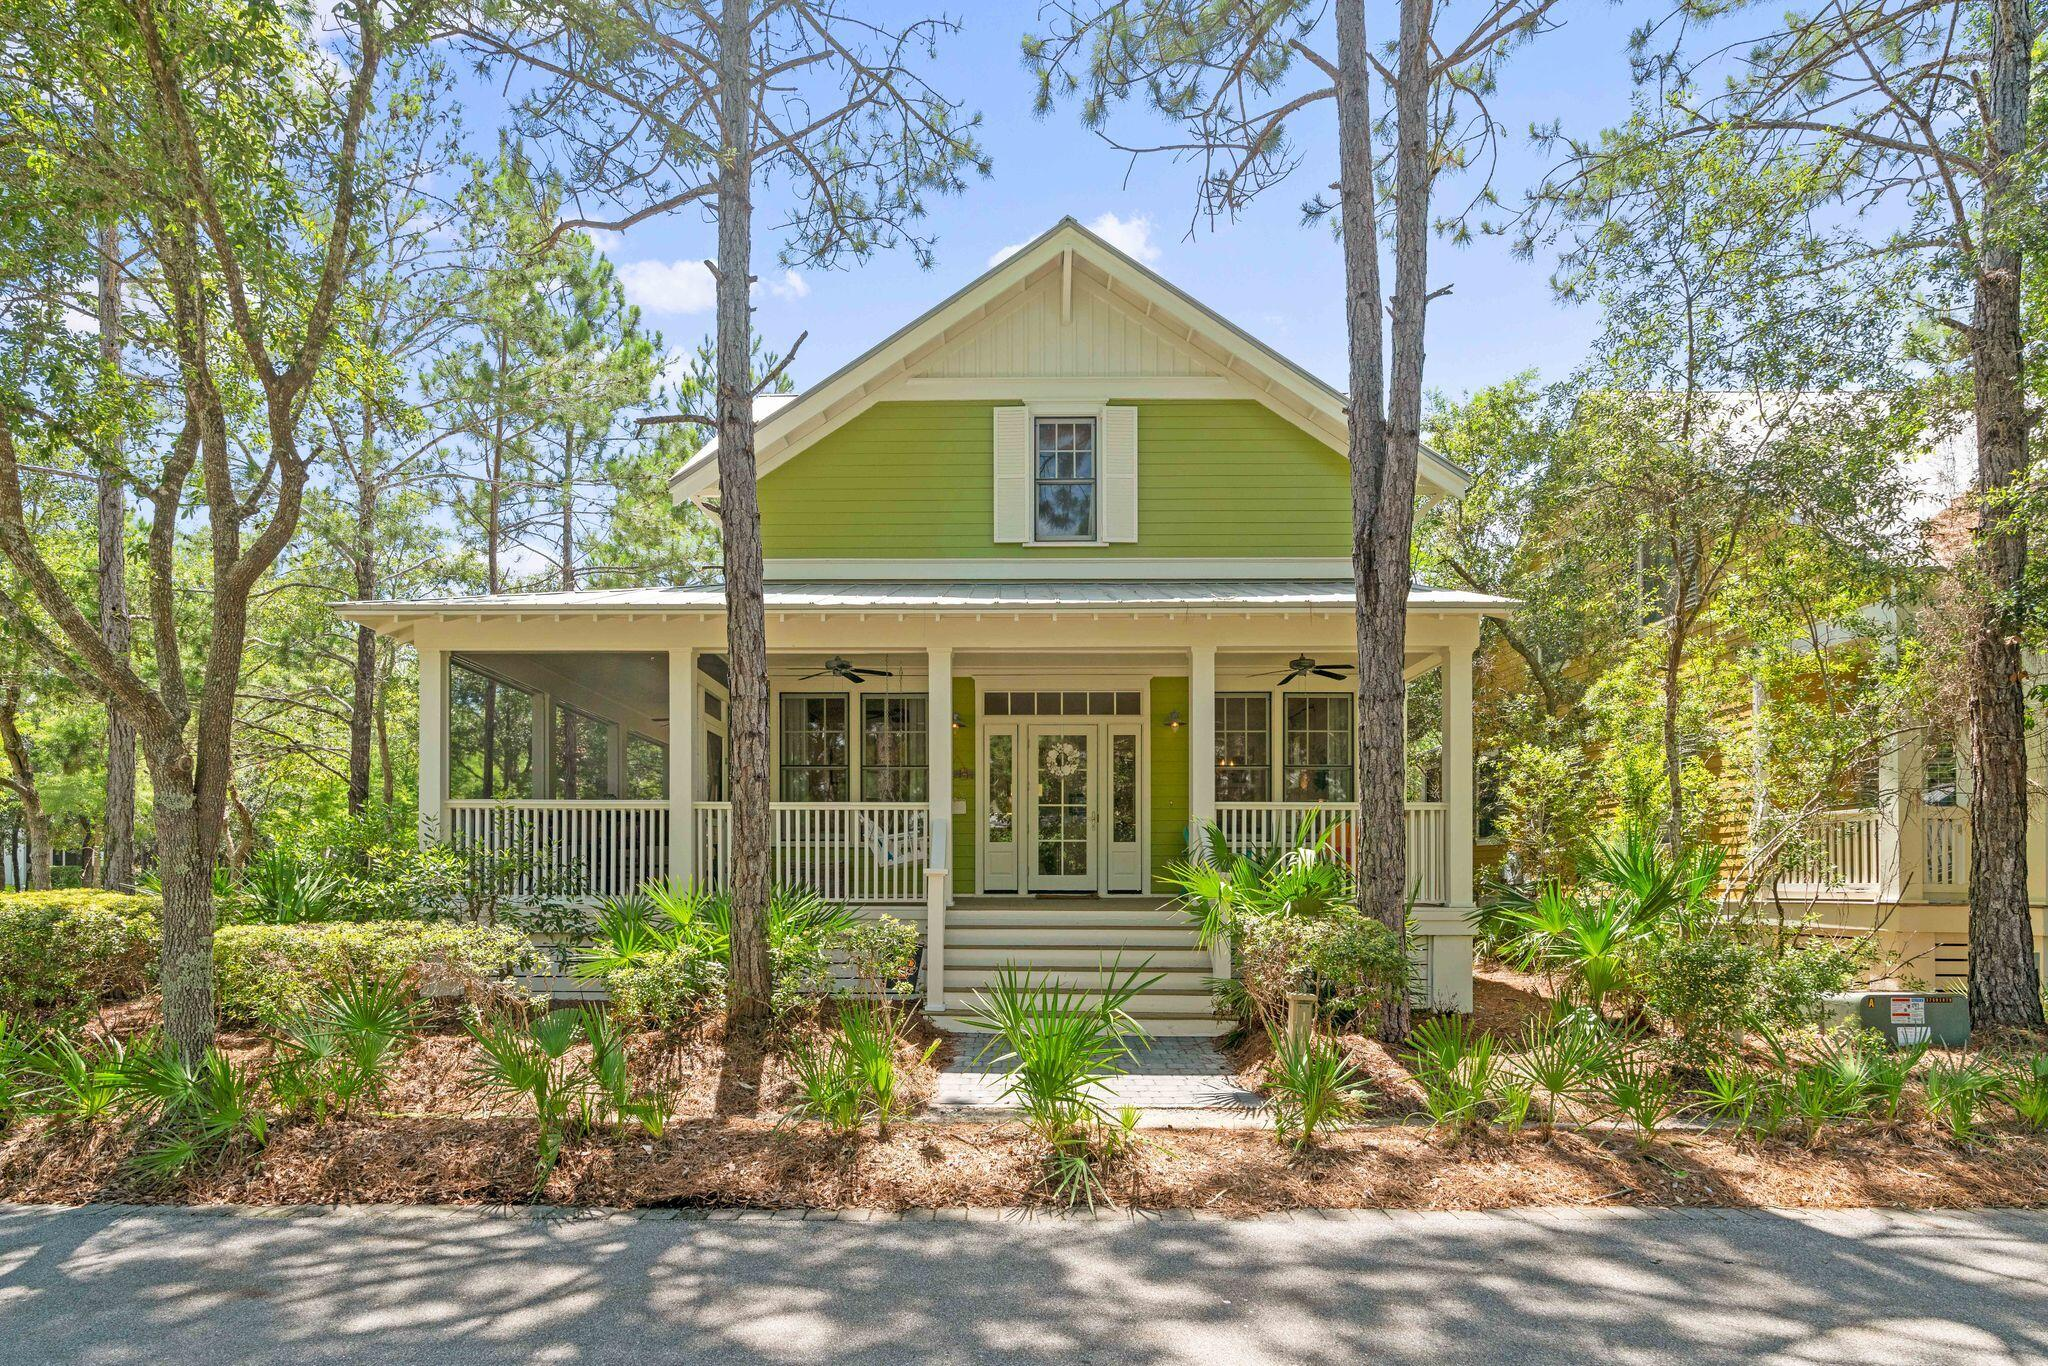 This 5 bedroom Beach House is tucked away on a corner lot in phase 3 of Watercolor.  The home has a large wrap around porch which is partially screened to enjoy summer days after a day at the beach or pool! The home offers an open floor plan allowing for great family time and entertaining.  The home offers wood flooring throughout and white shiplap walls. The kitchen offers a center island, kitchen aid stainless steel appliances to include refrigerator with icemaker, gas range, exhaust hood, dishwasher and microwave, an abundance of both counter and cupboard space and overhead transom cabinets that adorn the breakfast bar.  Decorative beach color backsplash fits perfectly in this Watercolor beach house.  This home offers the must have large pantry with wooden shelving.  Just down the hall is a very practical utility room complete with washer, dryer, utility sink and shelving. This home has a first floor master bedroom beautifully done with a whitewashed shiplap accent wall, large closet and a master bath with transom windows making it so light and bright! The bath offers a double vanity, garden bathtub with a beautiful shell chandelier, stand alone shower and water closet. A bunkroom and full bath complete the first floor. The second floor offers a large hall closet and two additional bedrooms.  One has an ensuite and one has a bonus bunk area with a full bath just across the hall. This property has a two car garage with a spacious carriage house above with a separate entrance. The carriage house not only has an oversized bedroom area, but a kitchenette area with a mini frig and a sink. A gorgeous white barn door slides open to the large bathroom with wall cubbies and a stand alone shower.  The perfect mother in law suite! The back porch of the home has a large storage closet and steps down to a large paver patio courtyard with an outdoor fireplace, grilling/kitchen area, al fresco dining and is covered by a beautiful white pergola. Tall Timber Court is a loop off o